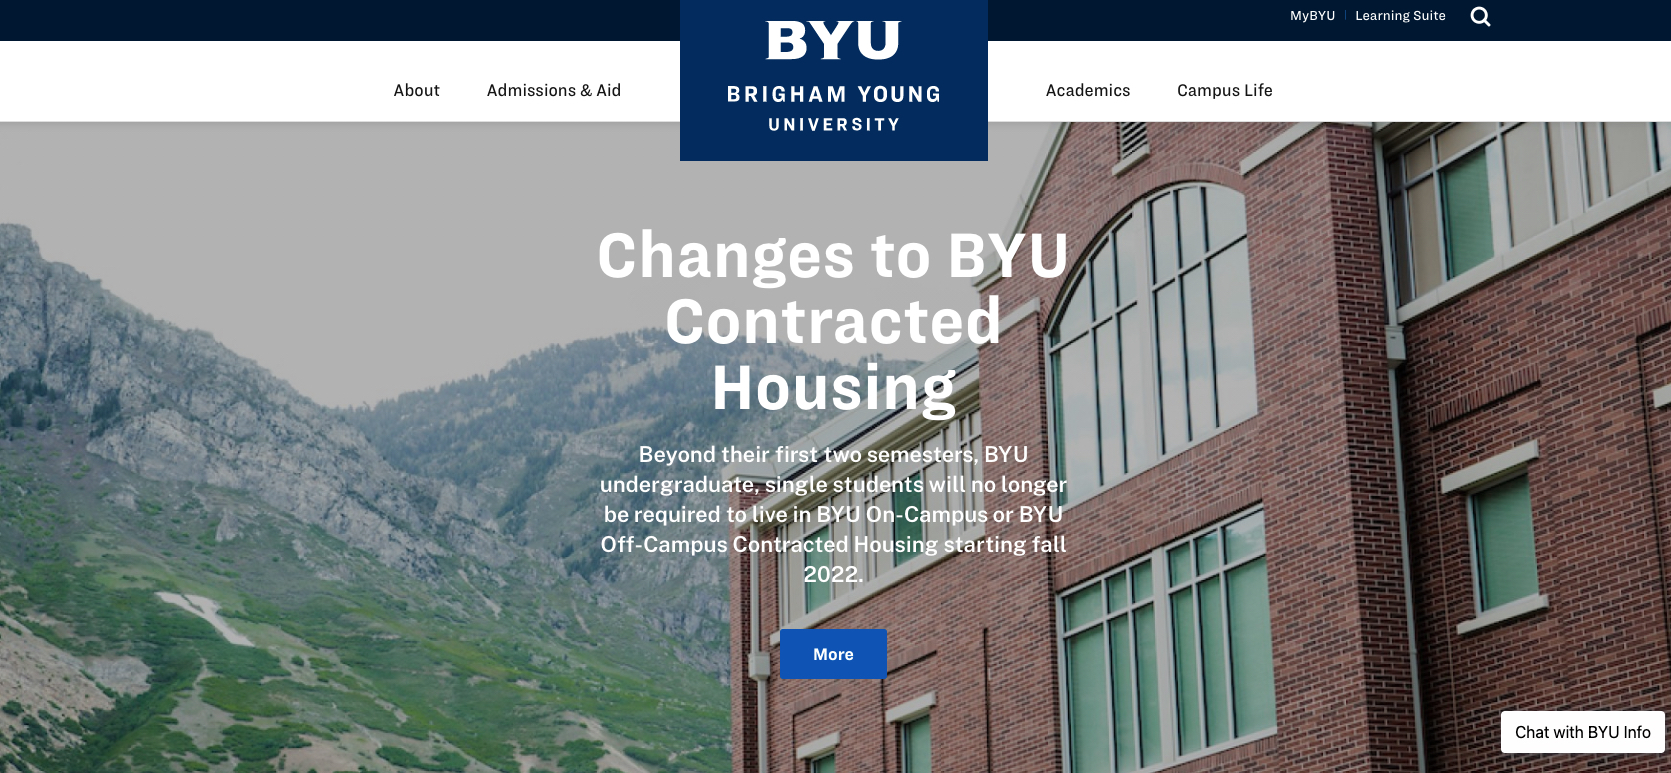 BYU announced a major housing policy change, no longer requiring students to reside in campus dorms or school-approved housing while enrolled.